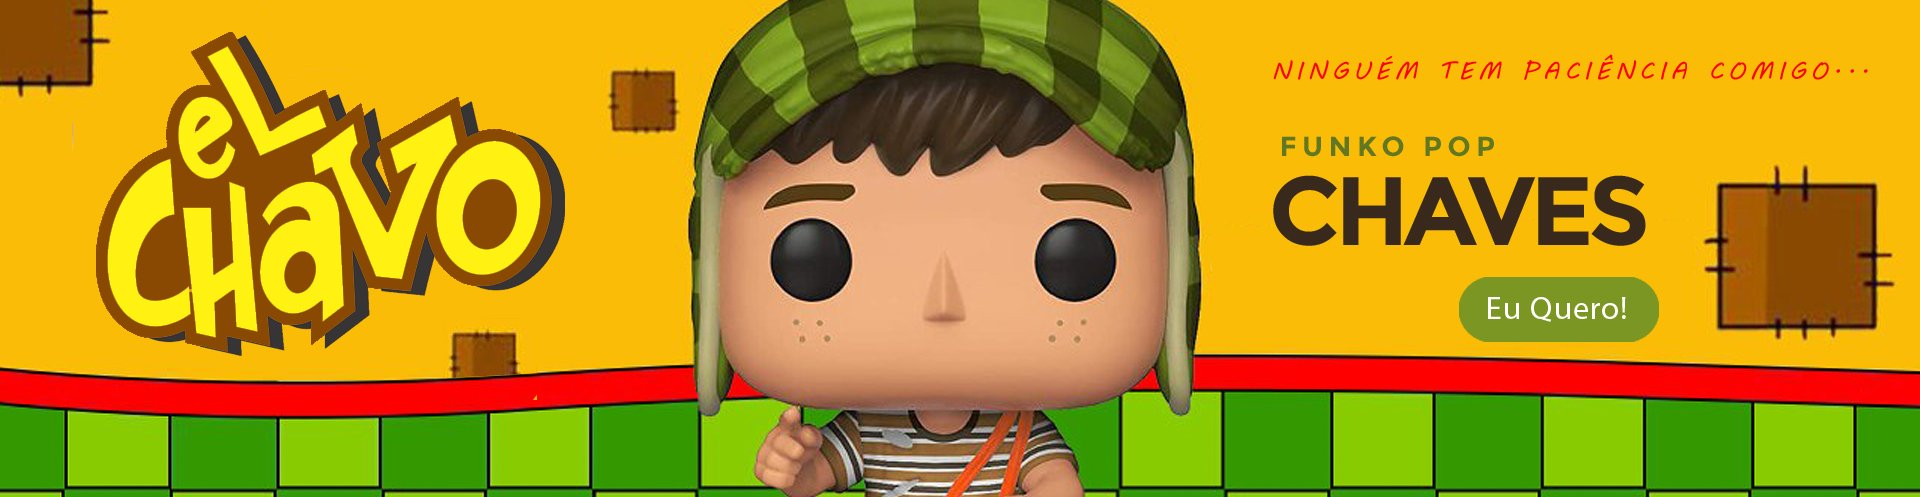 funko chaves